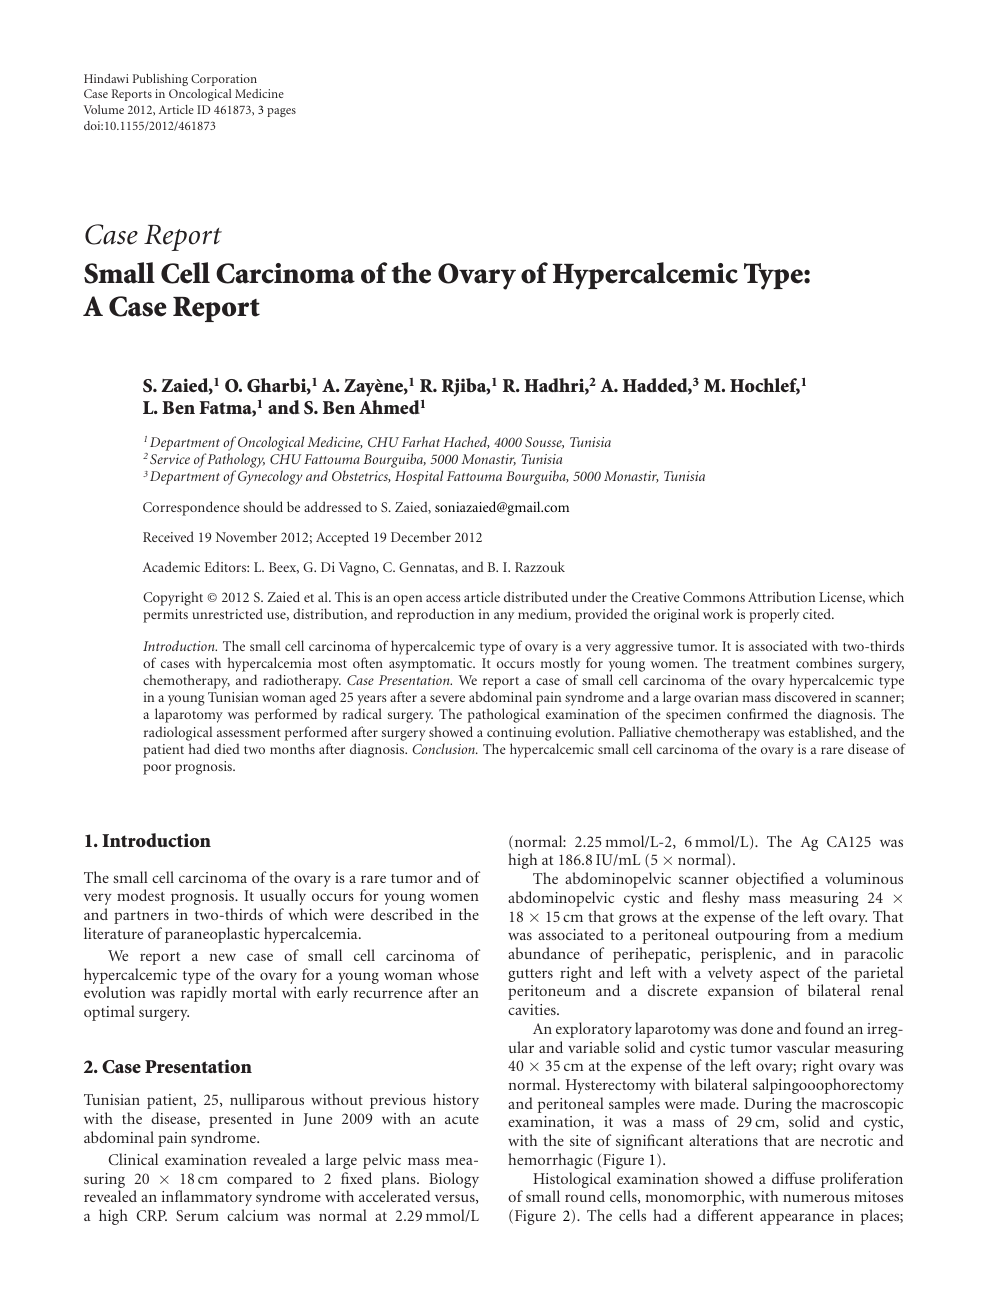 Small Cell Carcinoma Of The Ovary Of Hypercalcemic Type A Case Report Topic Of Research Paper In Clinical Medicine Download Scholarly Article Pdf And Read For Free On Cyberleninka Open Science